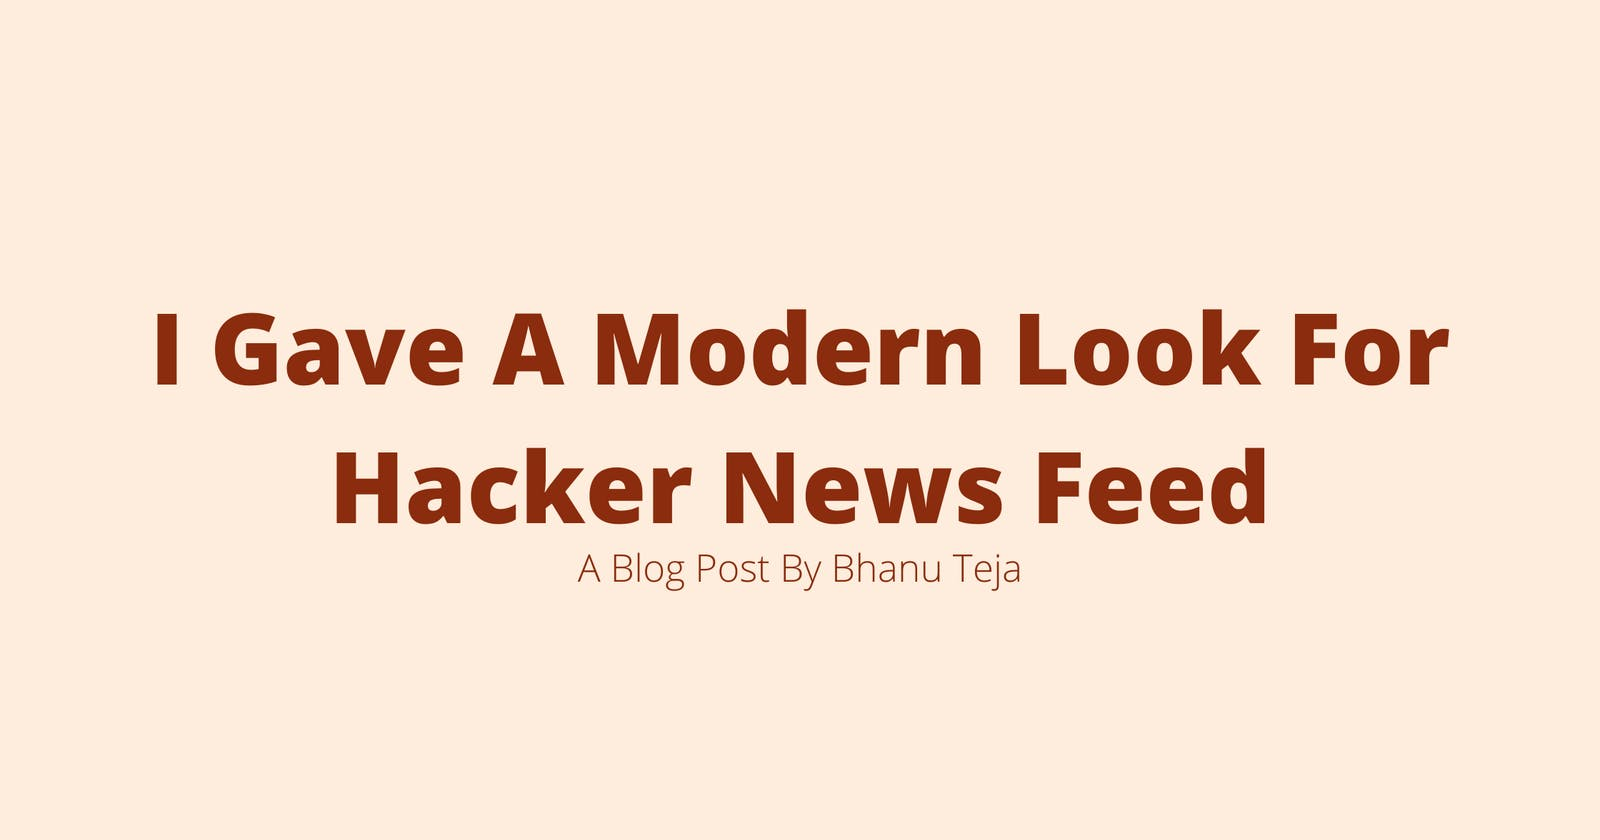 How I Gave A Modern Look For HackerNews Feed